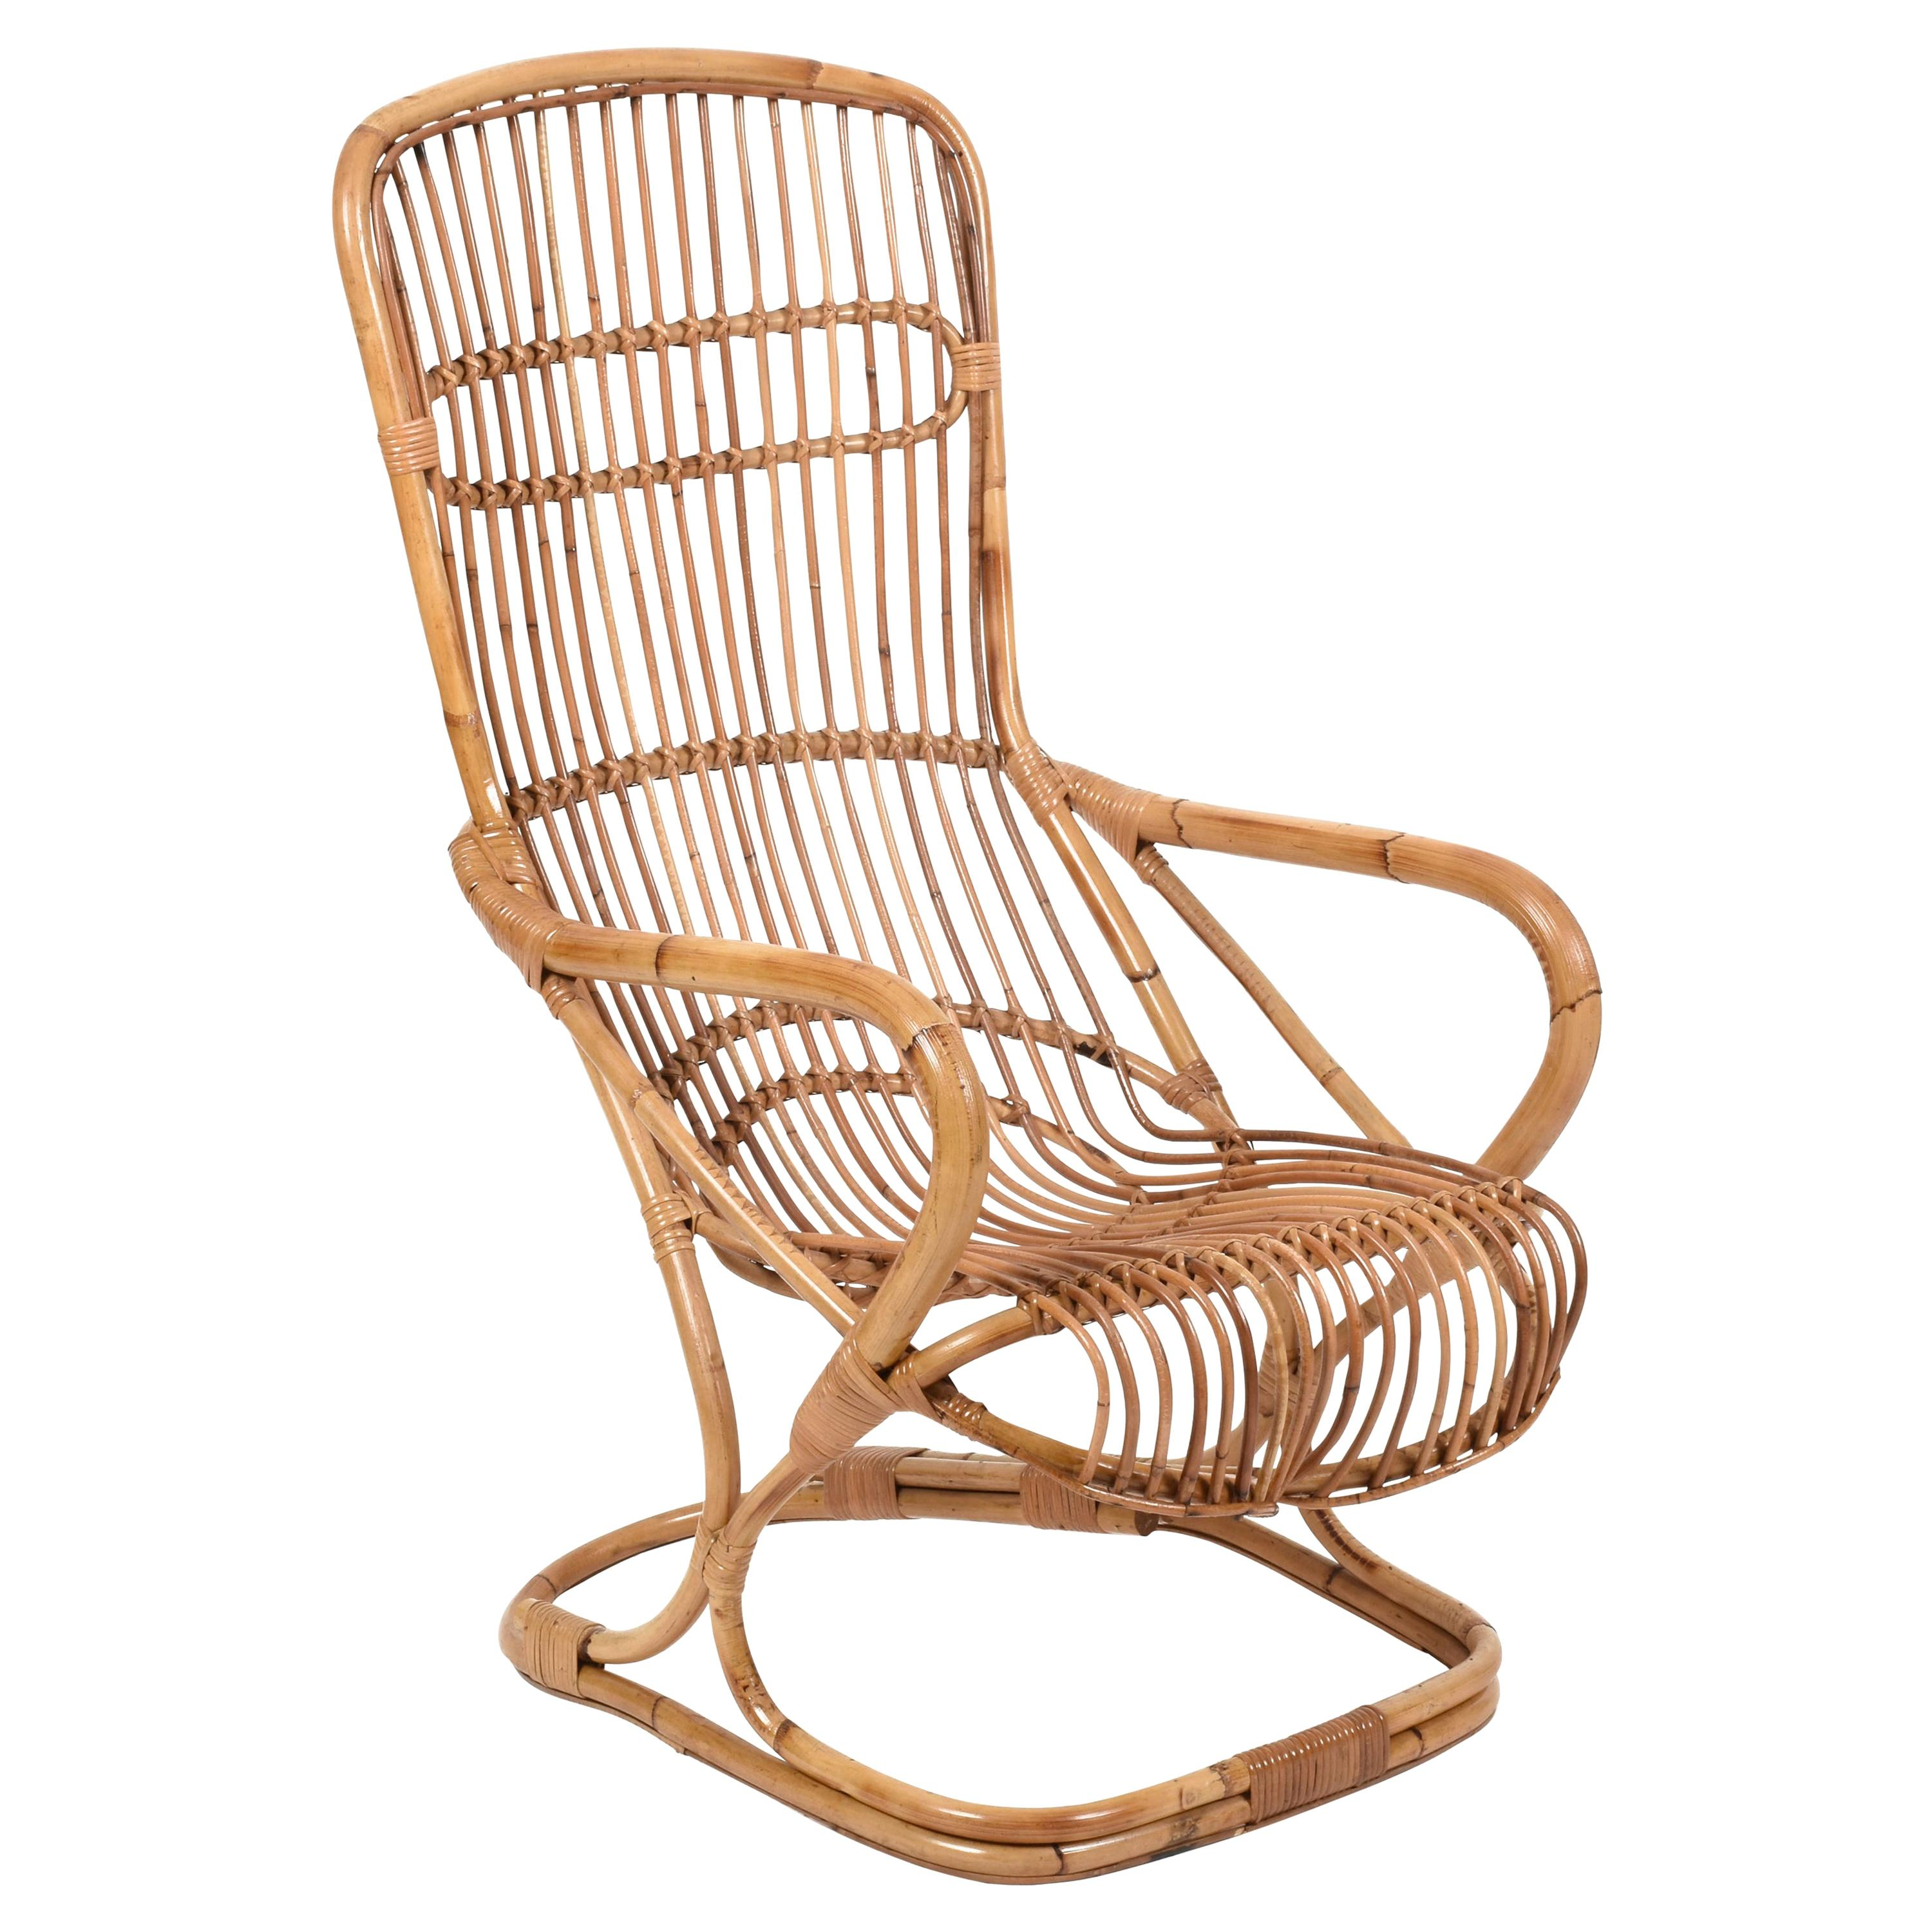 Midcentury French Riviera Rattan and Bamboo Italian Armchair, 1960s